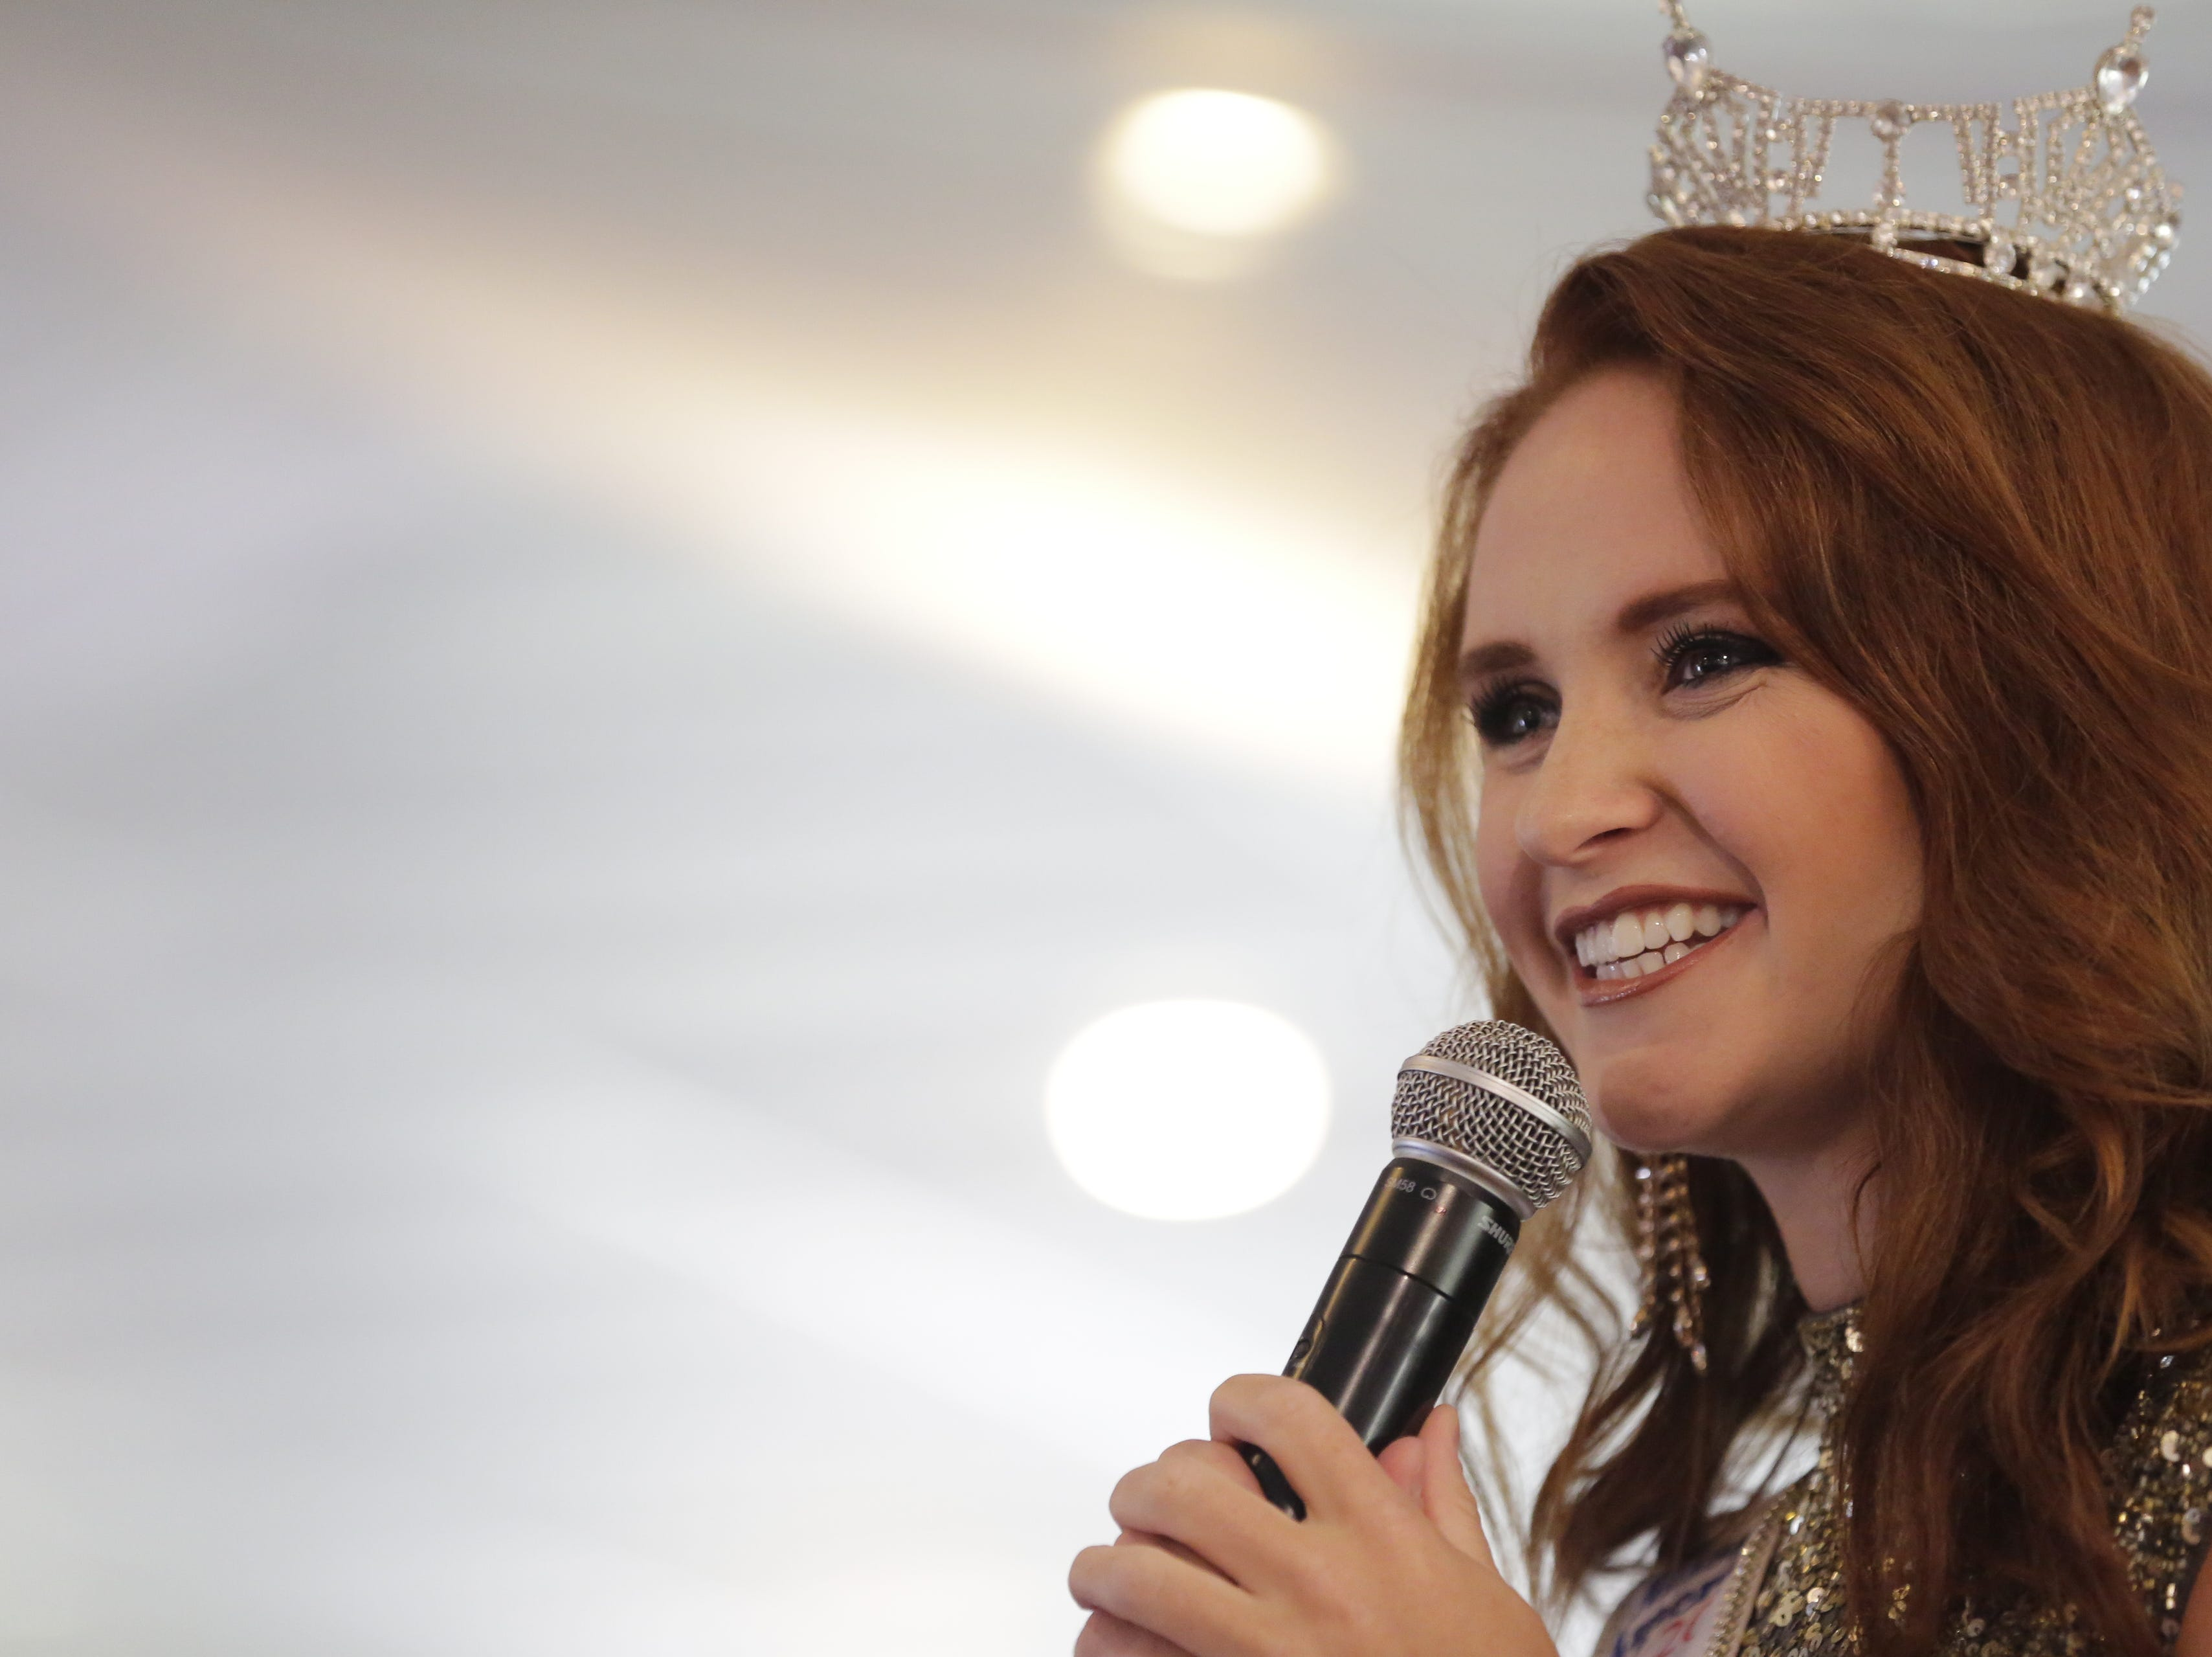 Miss Wisconsin 2018 Tianna Vanderhei gives a speech during her send off party for the 2019 Miss America Competition at Ridges Golf Course and Banquet Facility in Wisconsin Rapids on Sunday, Aug. 12, 2018. Vanderhei will compete in the 2019 Miss America Competition Sunday, Sept. 9, 2018 in Atlantic City, New Jersey.